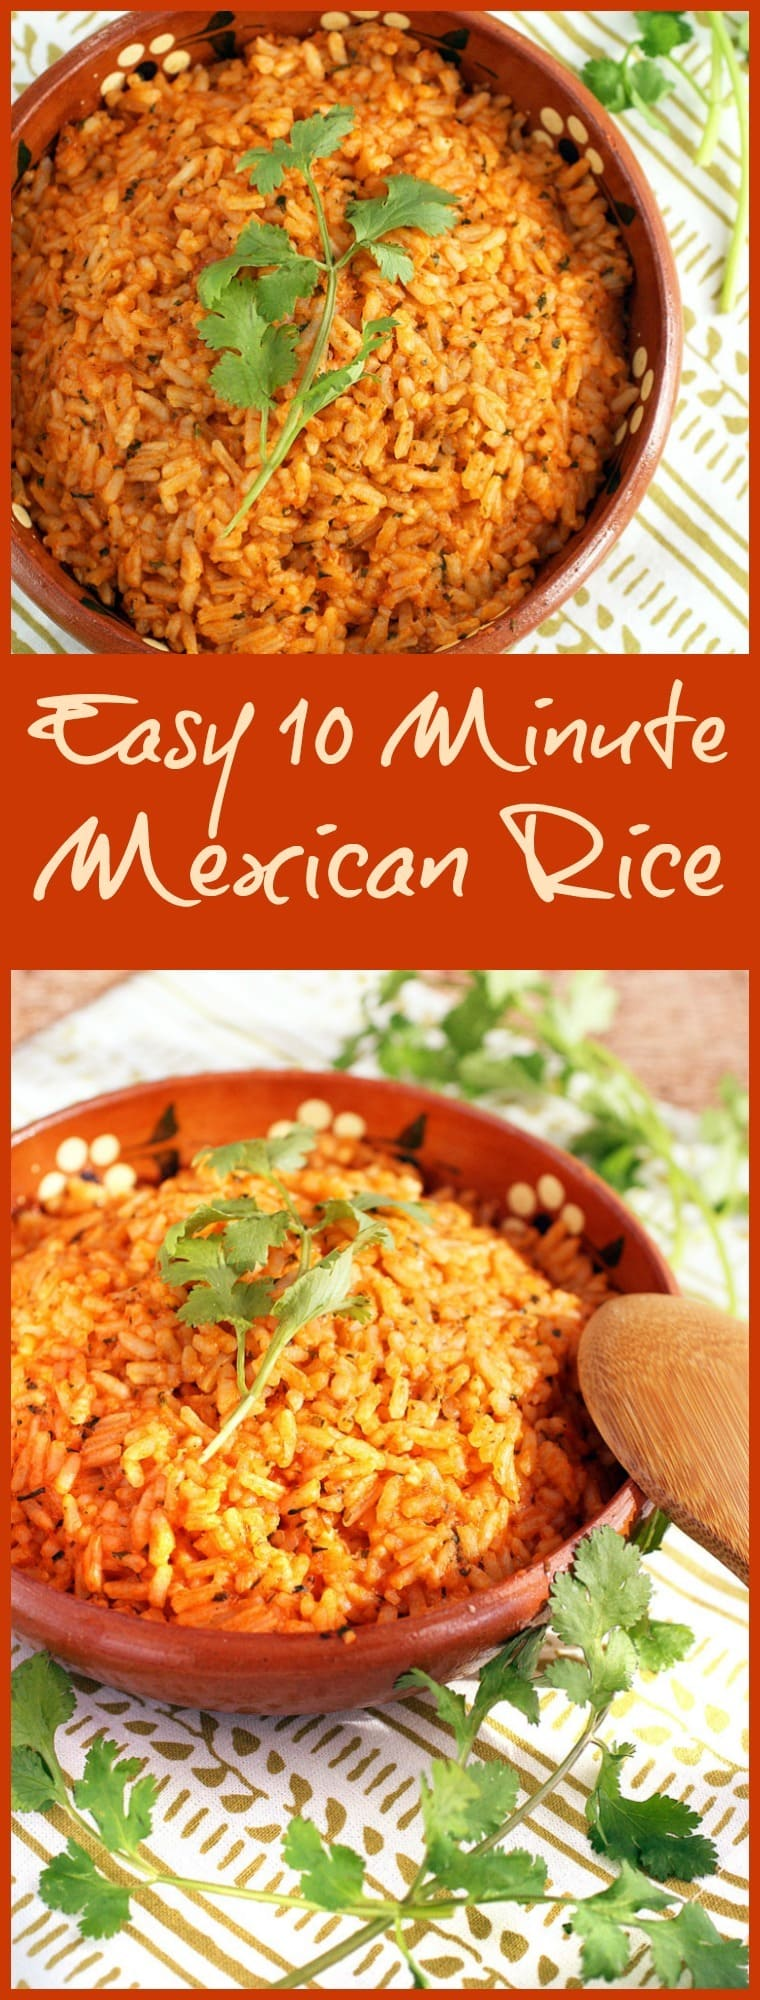 It's not taco night unless you have Mexican restaurant style rice. It's so simple to prepare if you have this Easy 10 Minute Mexican Rice recipe! Can be made gluten free and vegetarian, too! #glutenfree #mexicanfood #rice #vegetarian #copycatrecipes #mexicanrice #taconight